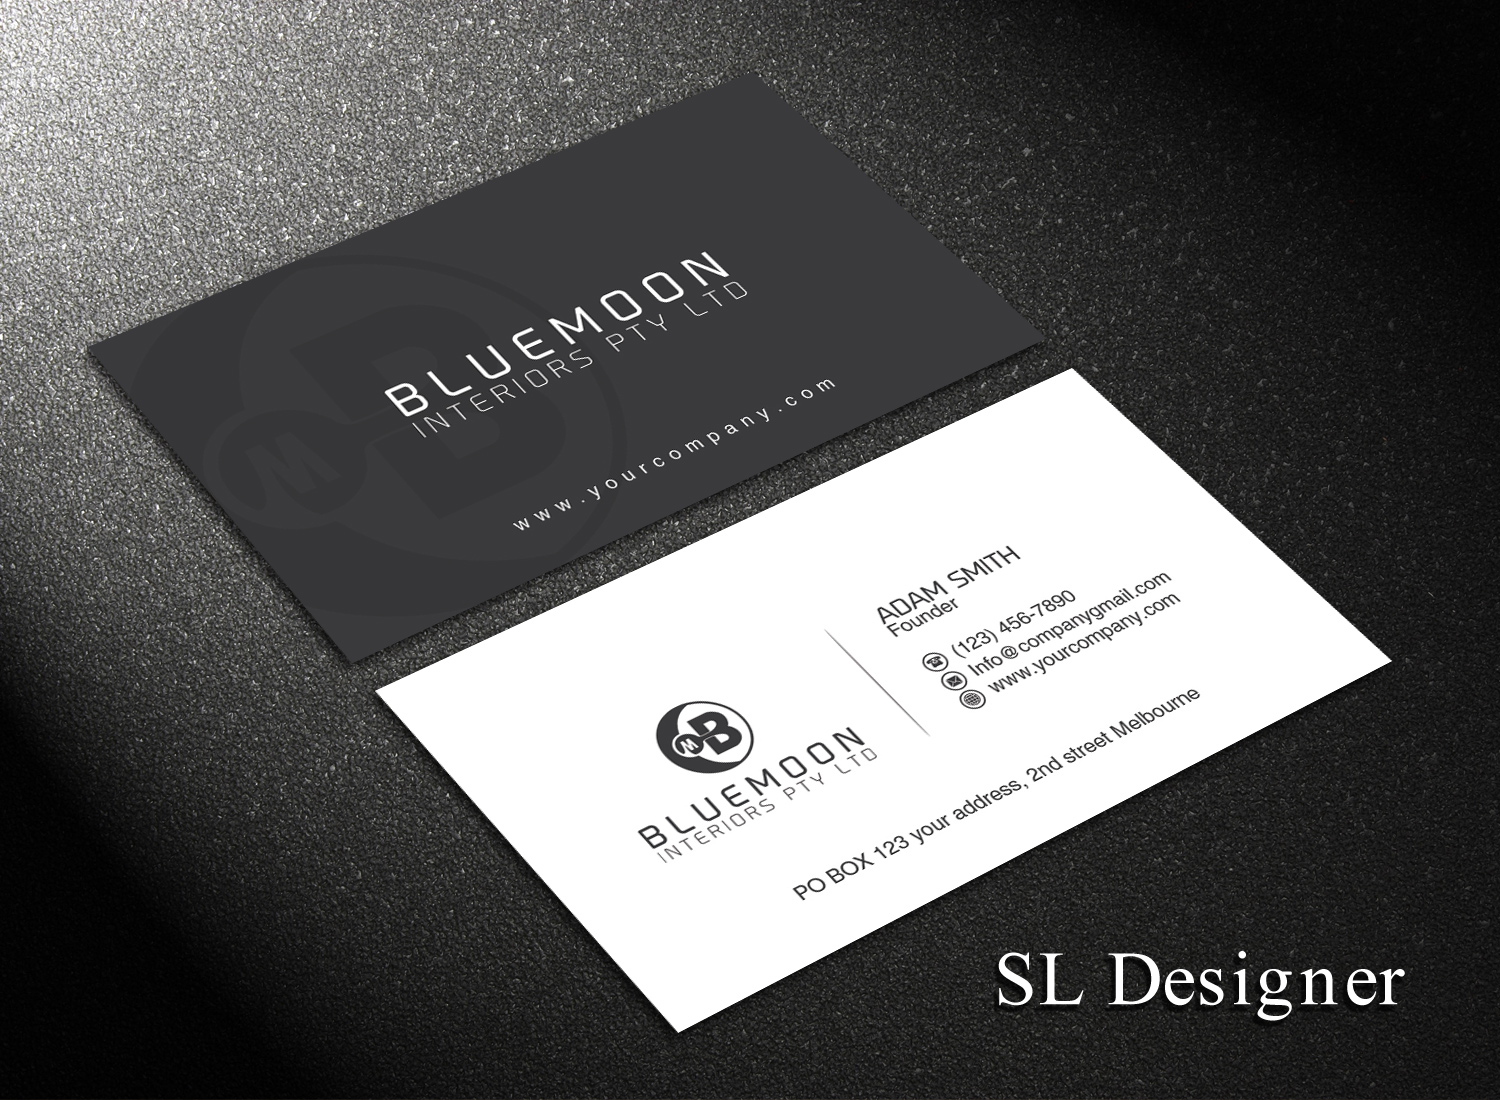 Business business card design for bluemoon interiors pty ltd by sl business business card design for bluemoon interiors pty ltd in australia design 17705239 reheart Choice Image